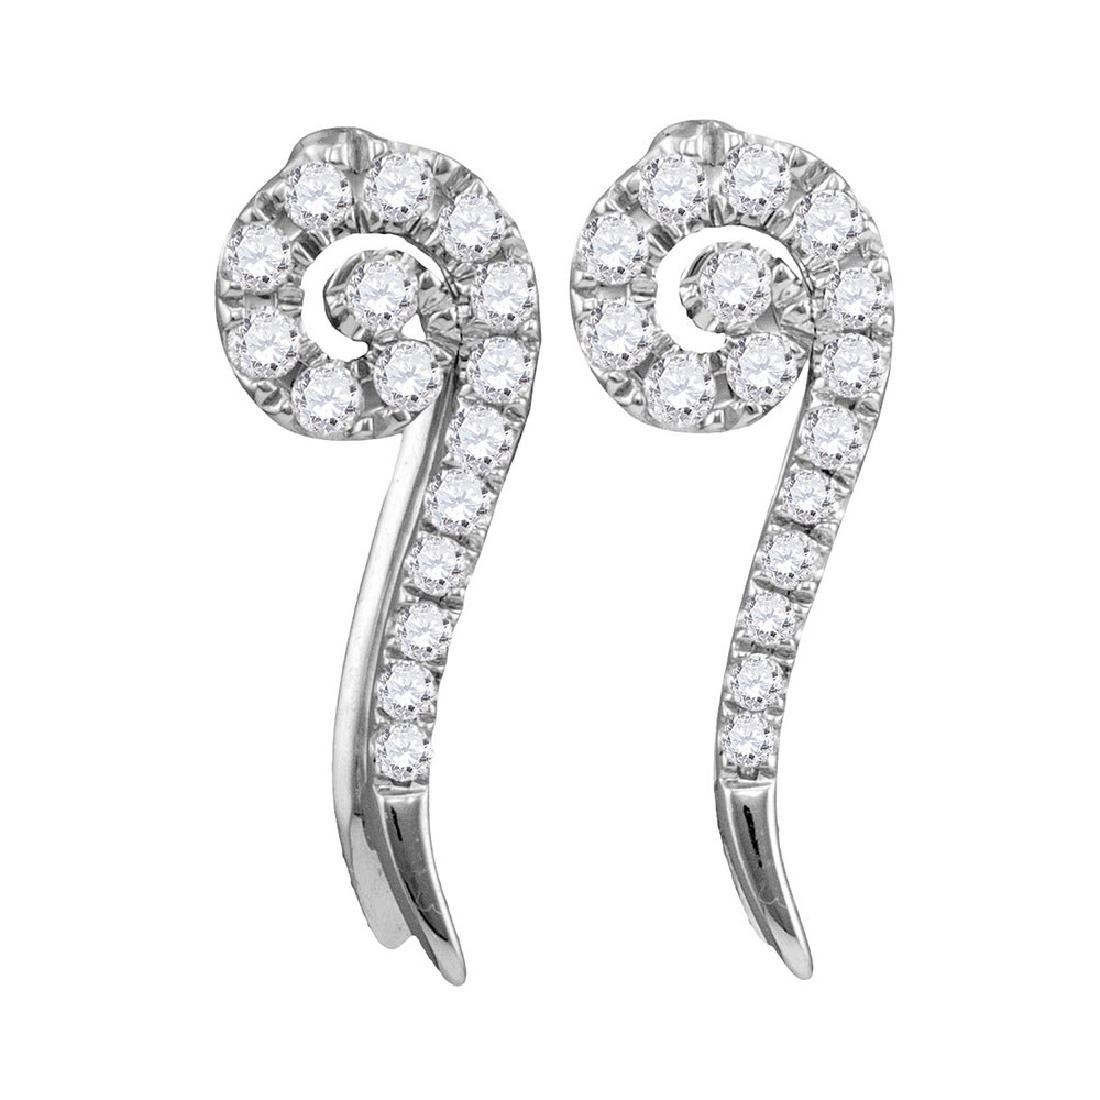 0.25 CTW Diamond Curled Vertical Stud Earrings 10KT